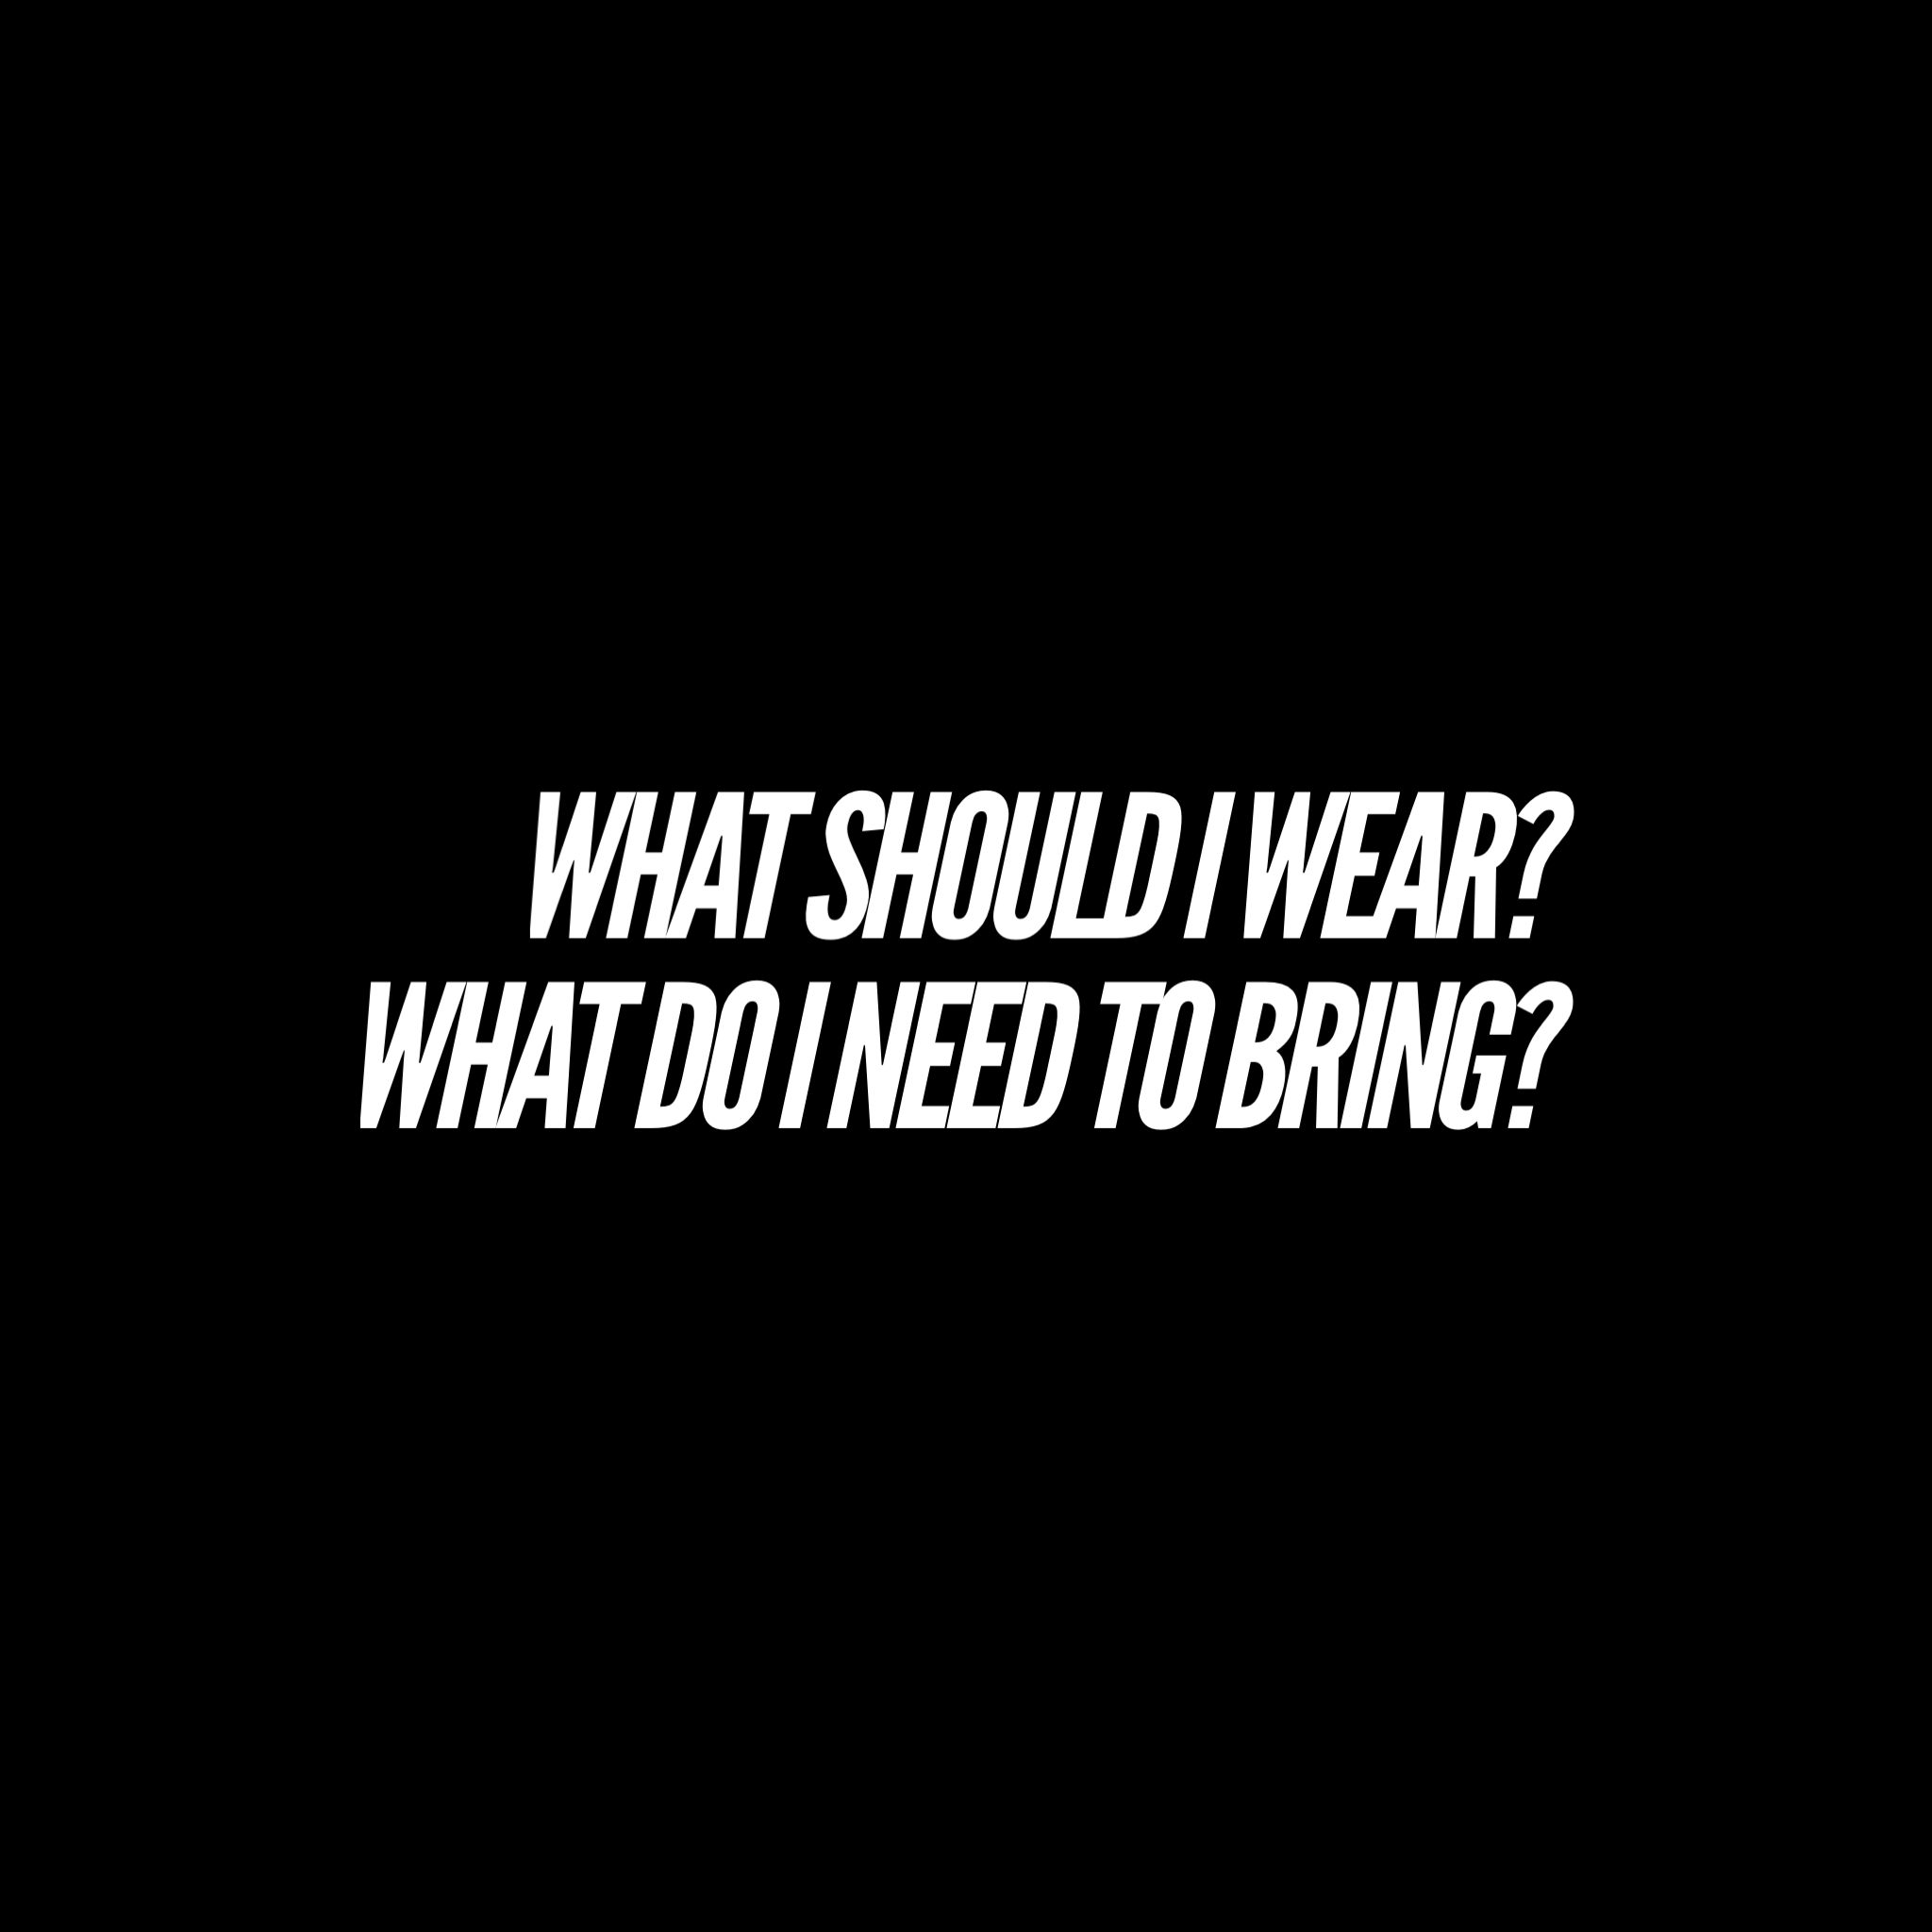 Wear what you'd wear to a yoga or workout class—a tank/tee and shorts/pants that are easy to move in. Breathable fabrics are preferable because once we get moving, you'll work up a bit of a sweat. If you'd like, you can wear socks or soft soled shoes (like ballet shoes), but please do not wear hard soled shoes. Most participants will do the DMT practice barefoot. You can bring a yoga mat, towel, or blanket to rest and stretch on. During the majority of the class, you will not need your mat, towel, or blanket, but it can be nice to have for the resting period at the end of the class. Bring a water bottle too! We will either have plain water or water infused with nettle tea if you want to fill up!